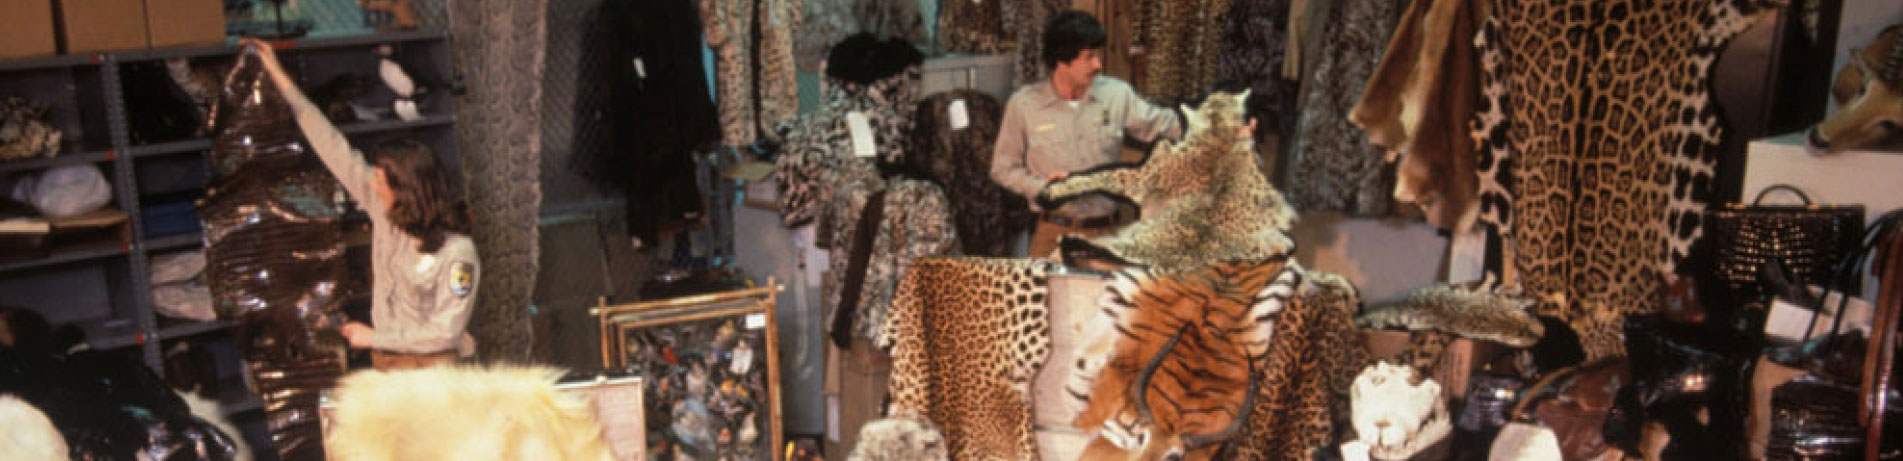 Officials handling confiscated wildlife items including tiger and leopard skins